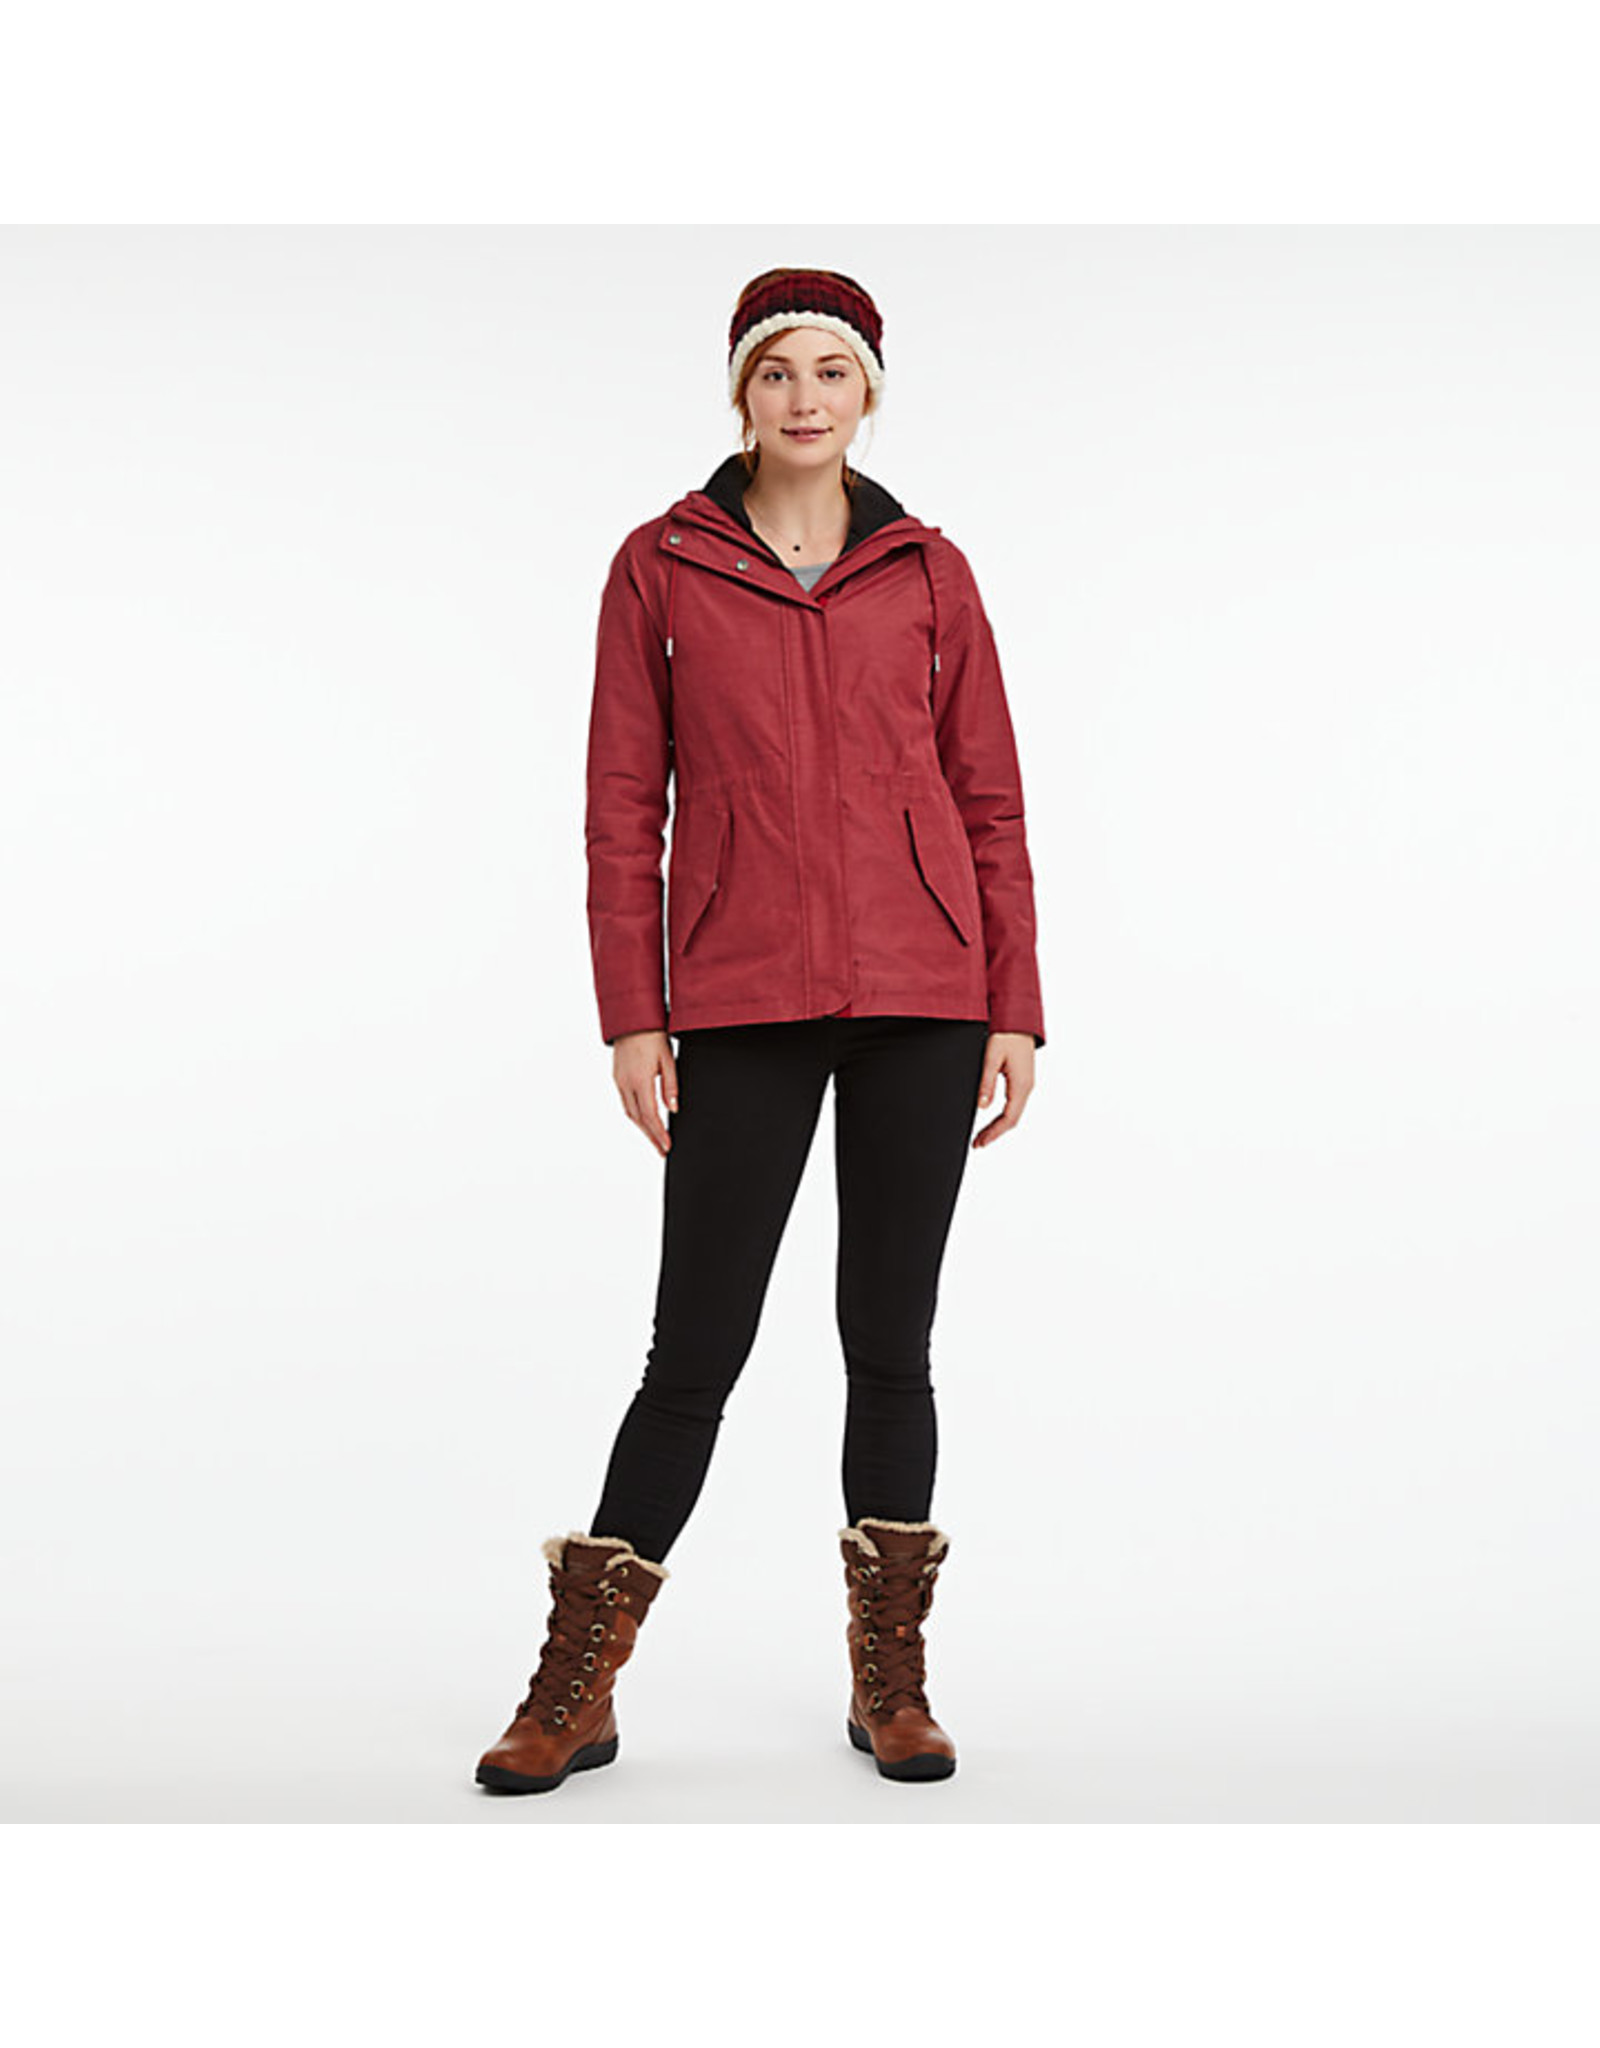 Timberland Women's Mount Hope - 19AF